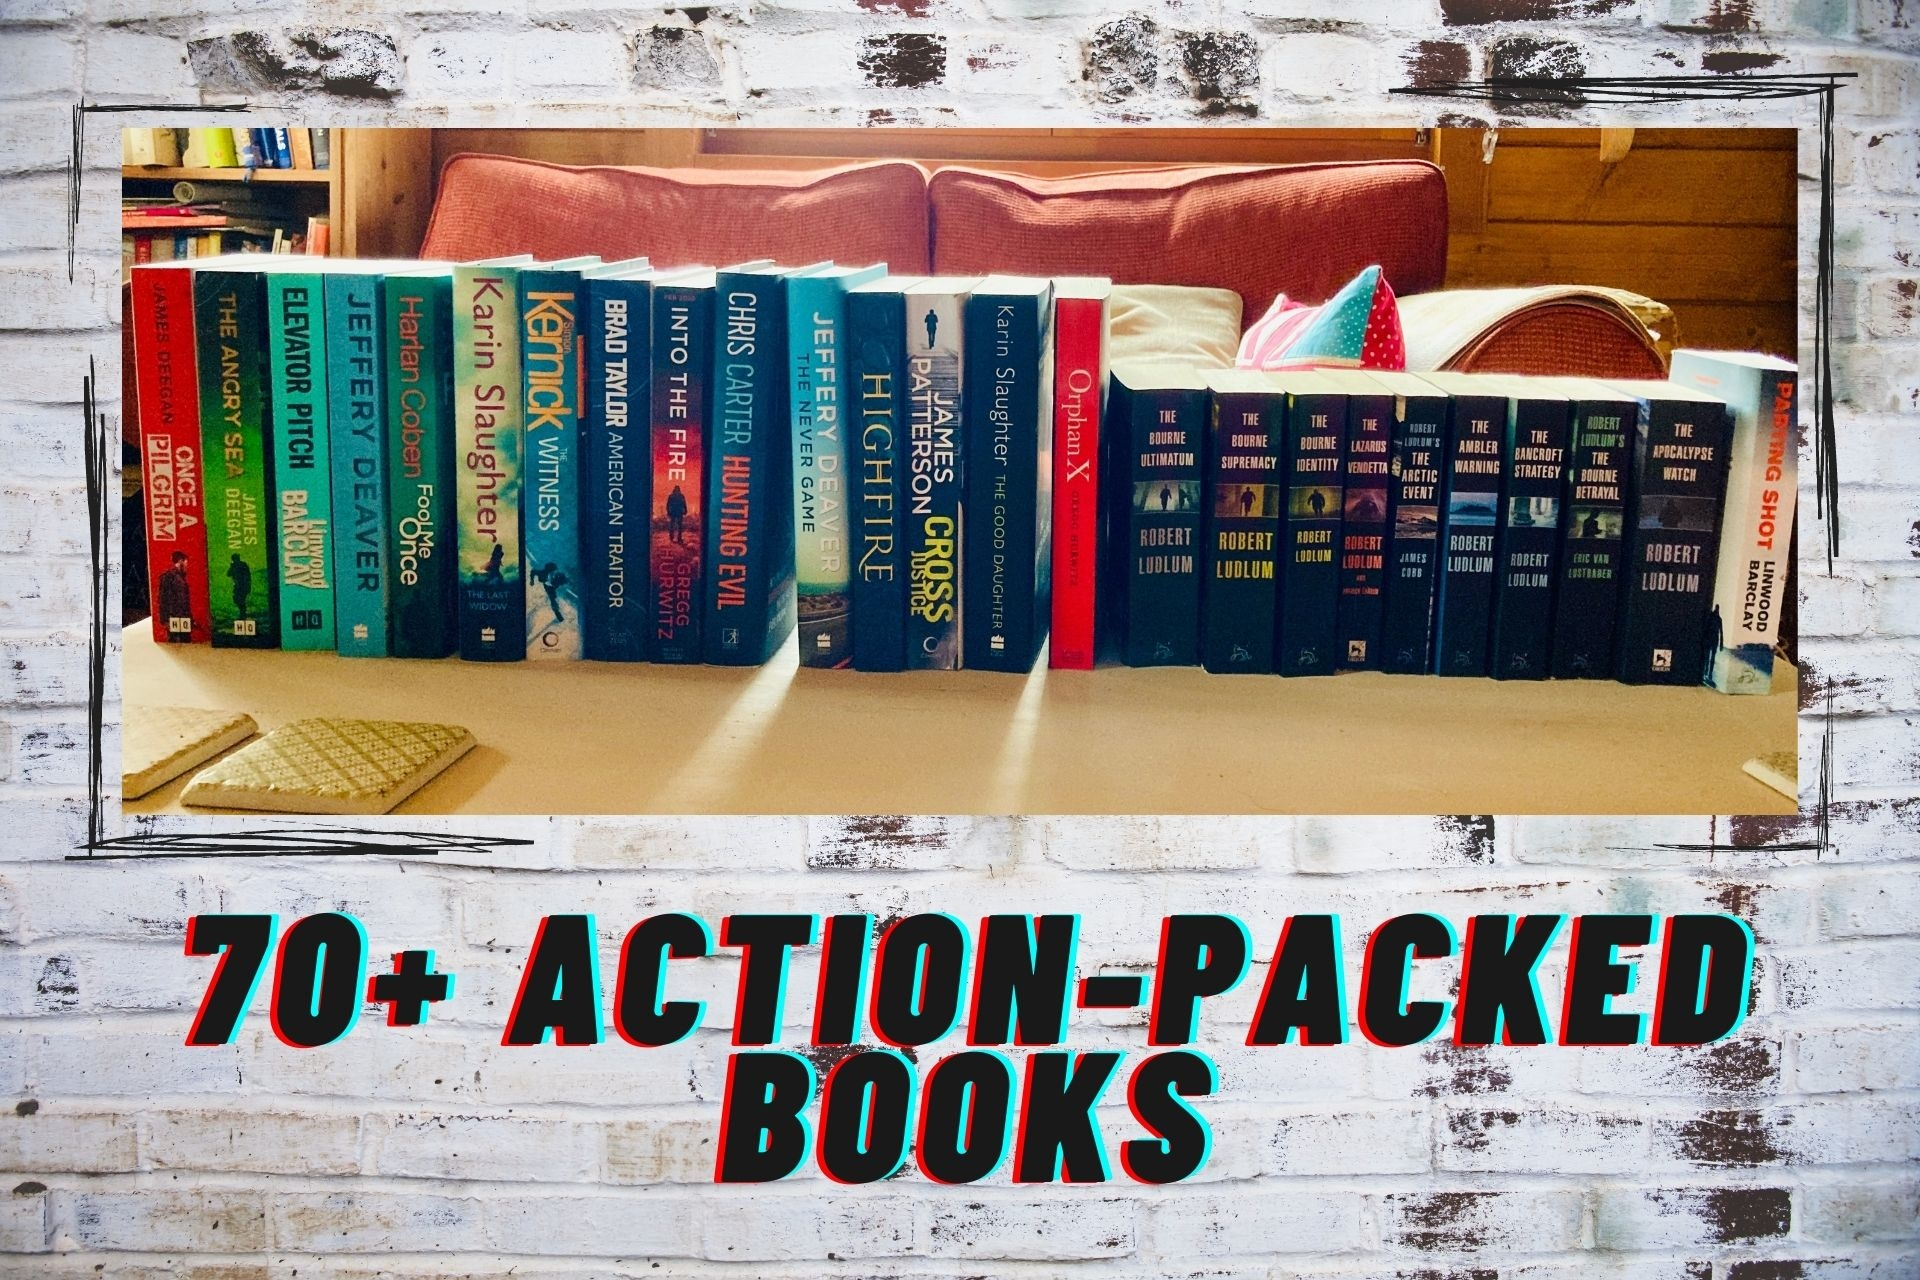 70+ Action-Packed Books